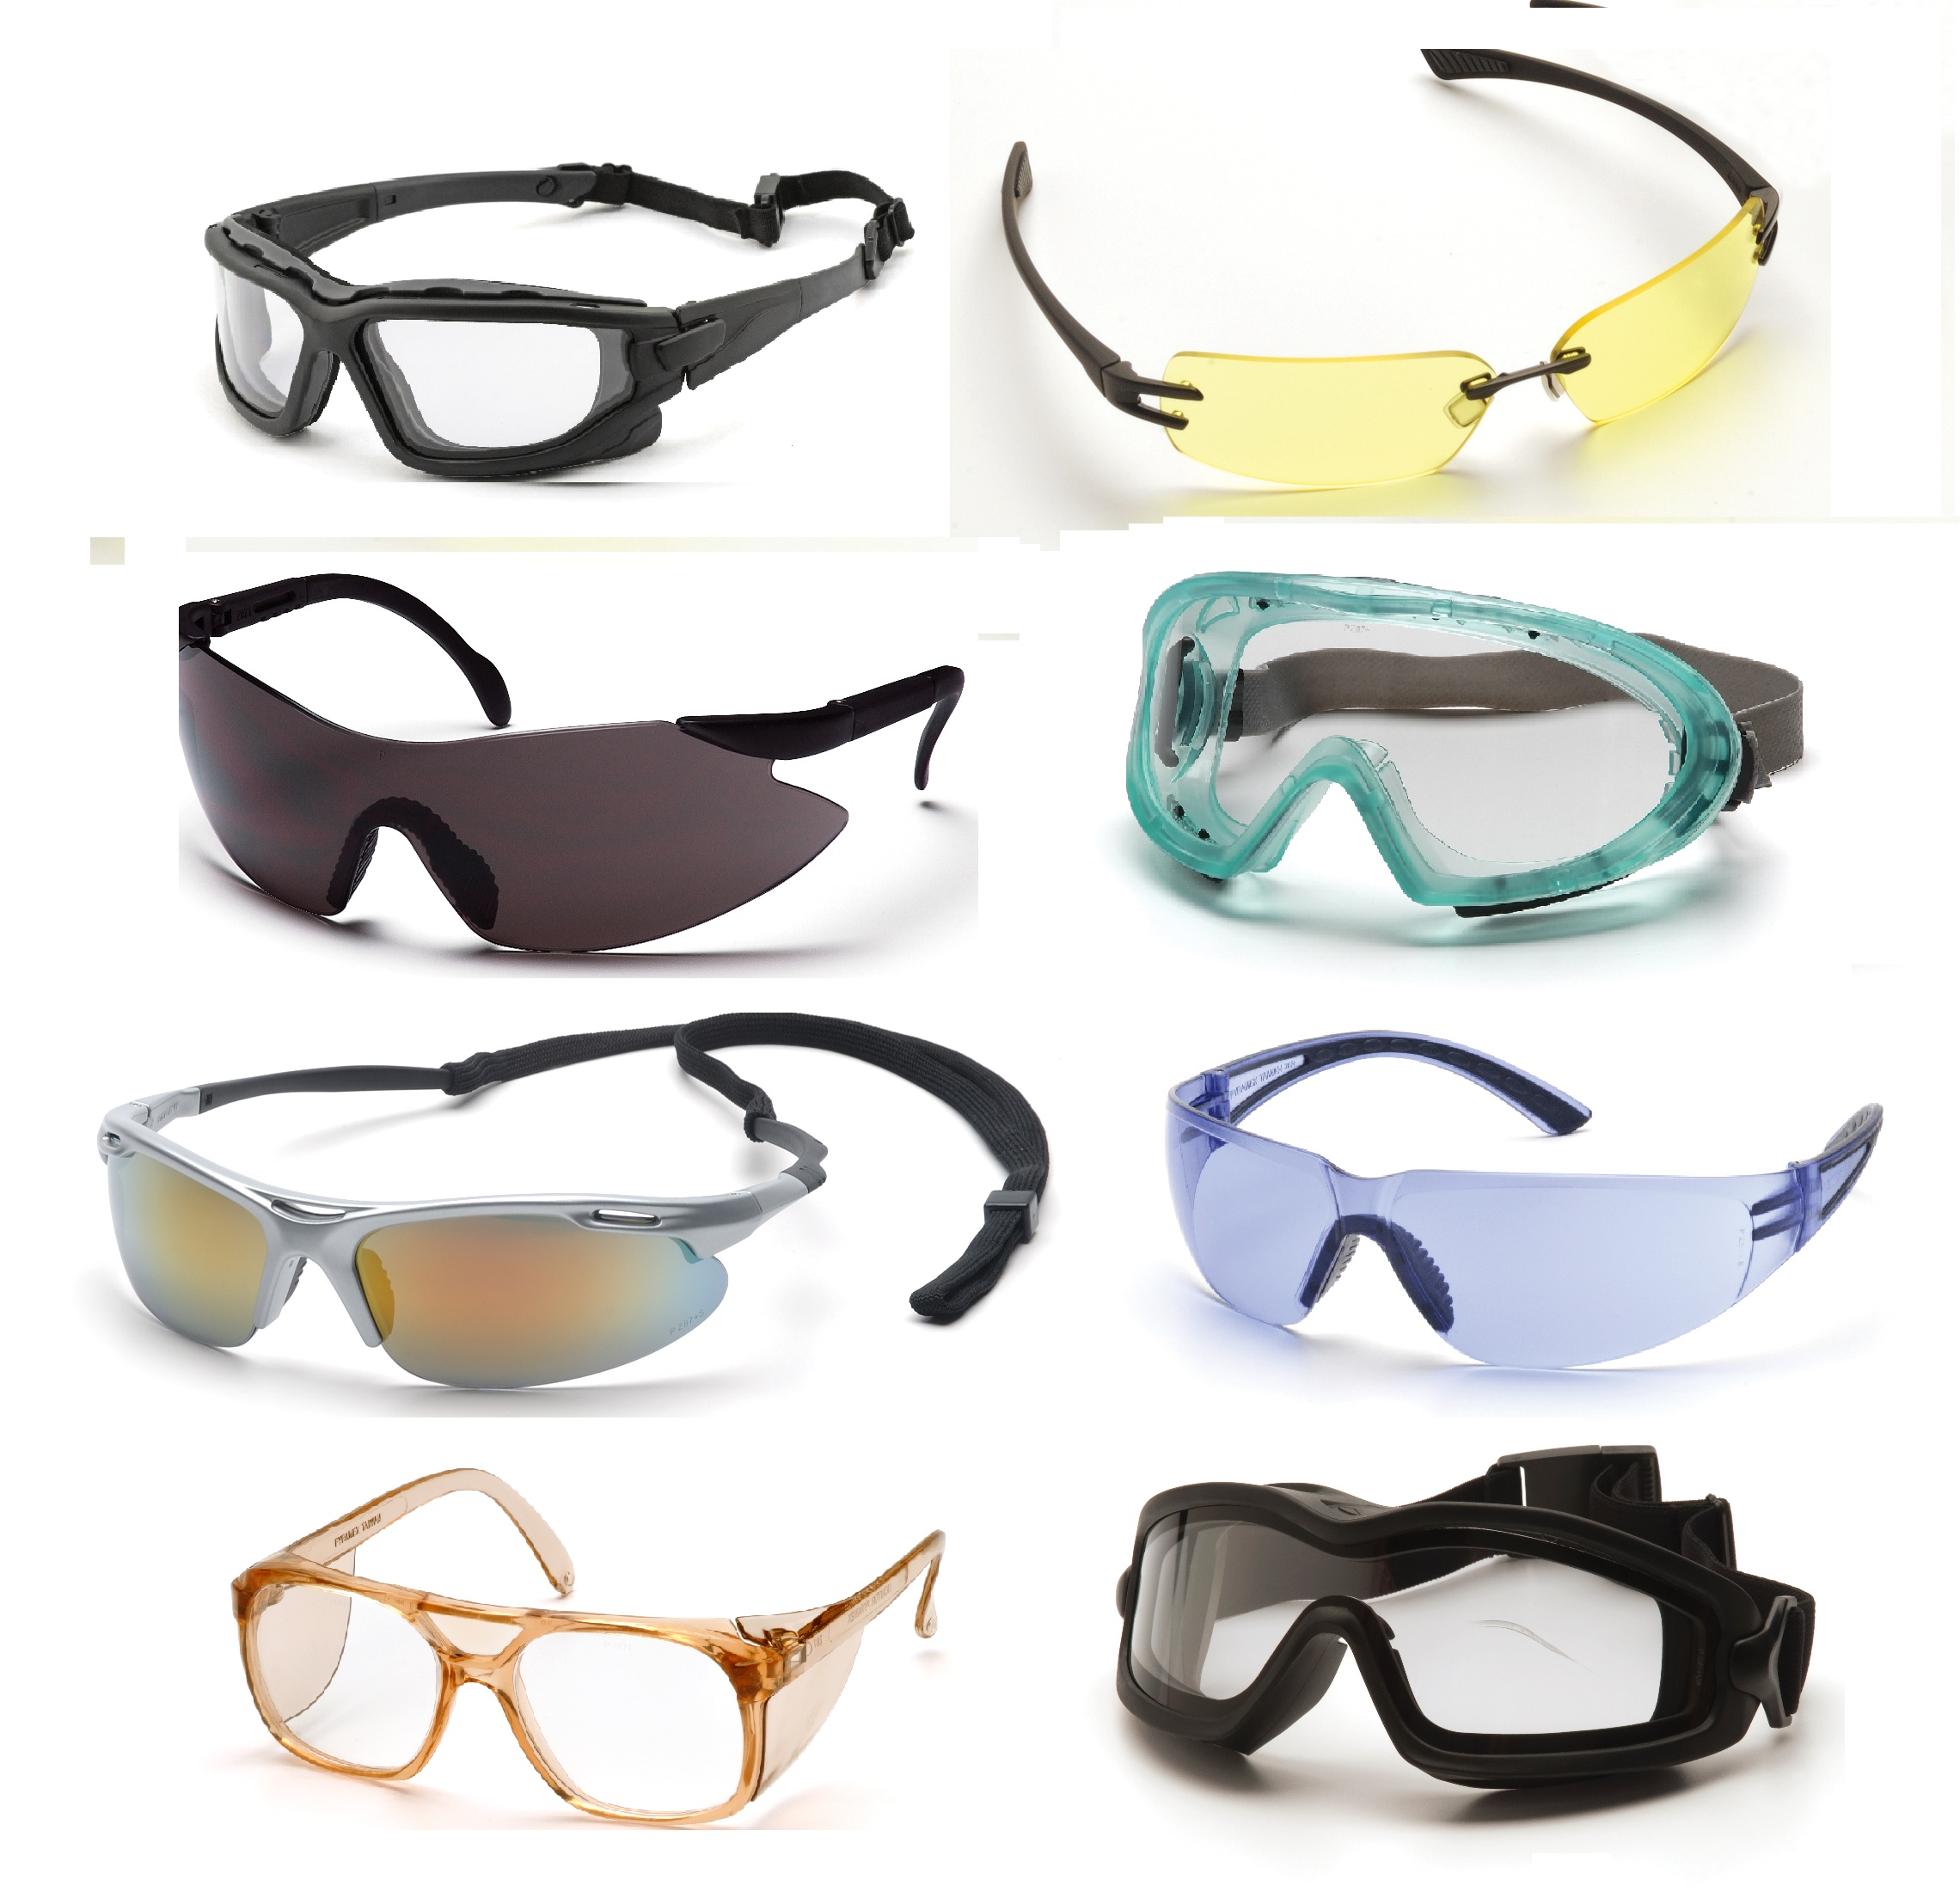 home-page-safety-eyewear-1.jpg